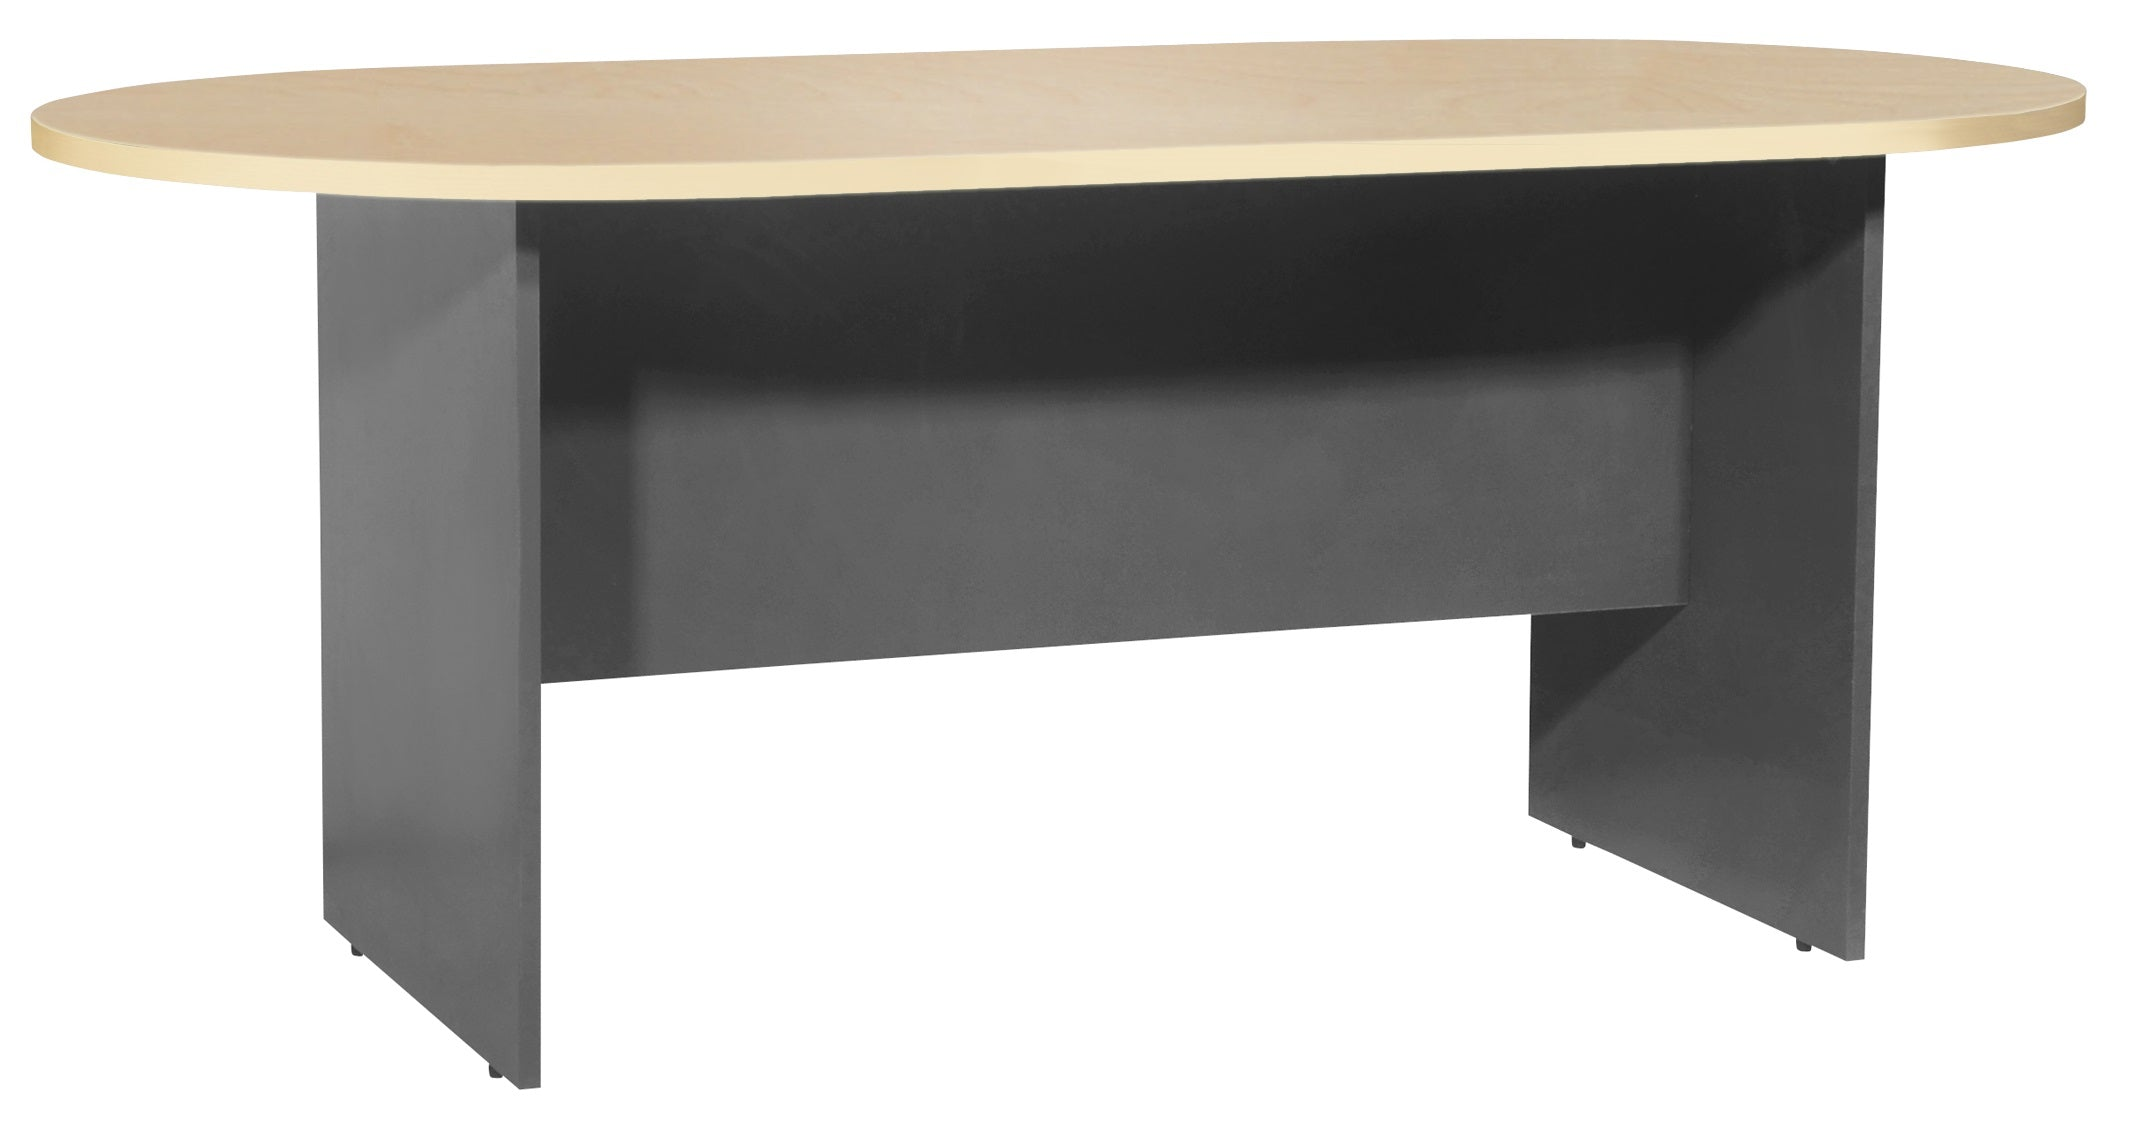 tables conference foot american denmark table walnut product series national